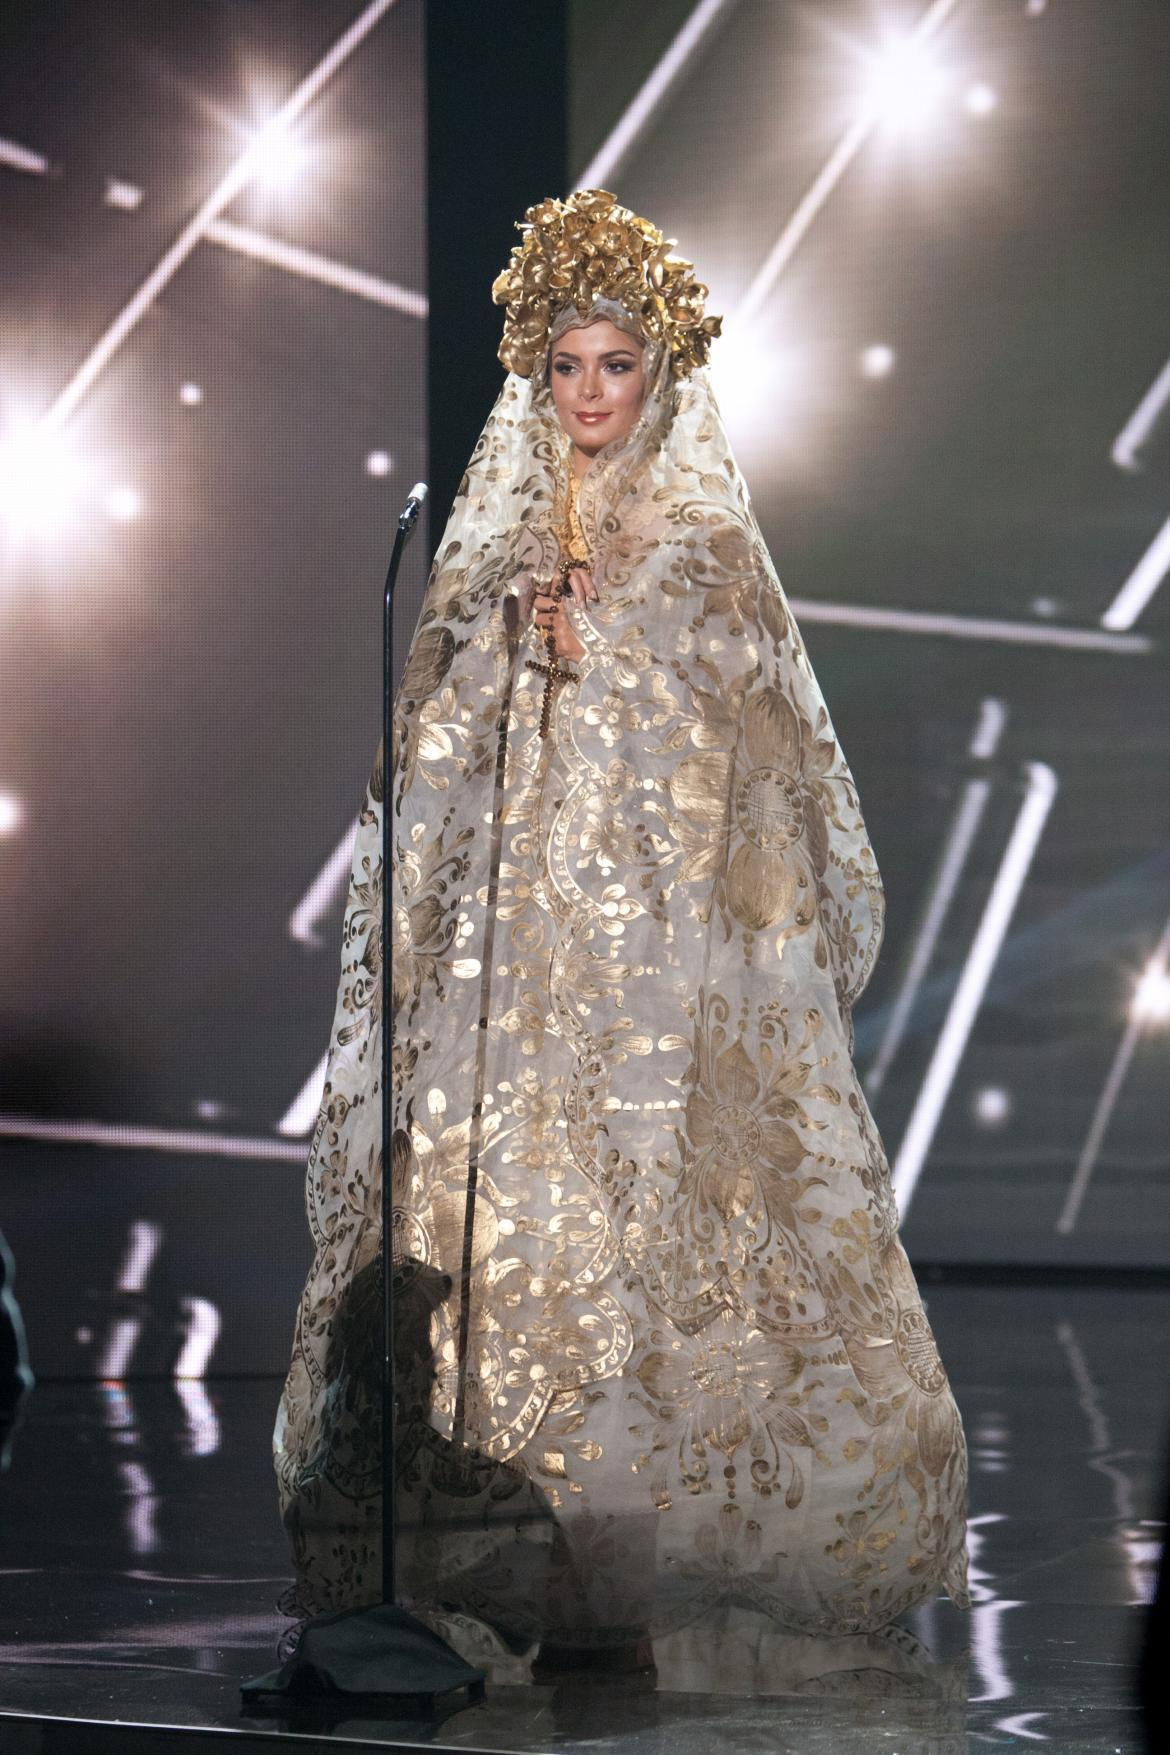 So Cal Clothing >> Miss Universe 2015 National Costume Show Photos: See ...